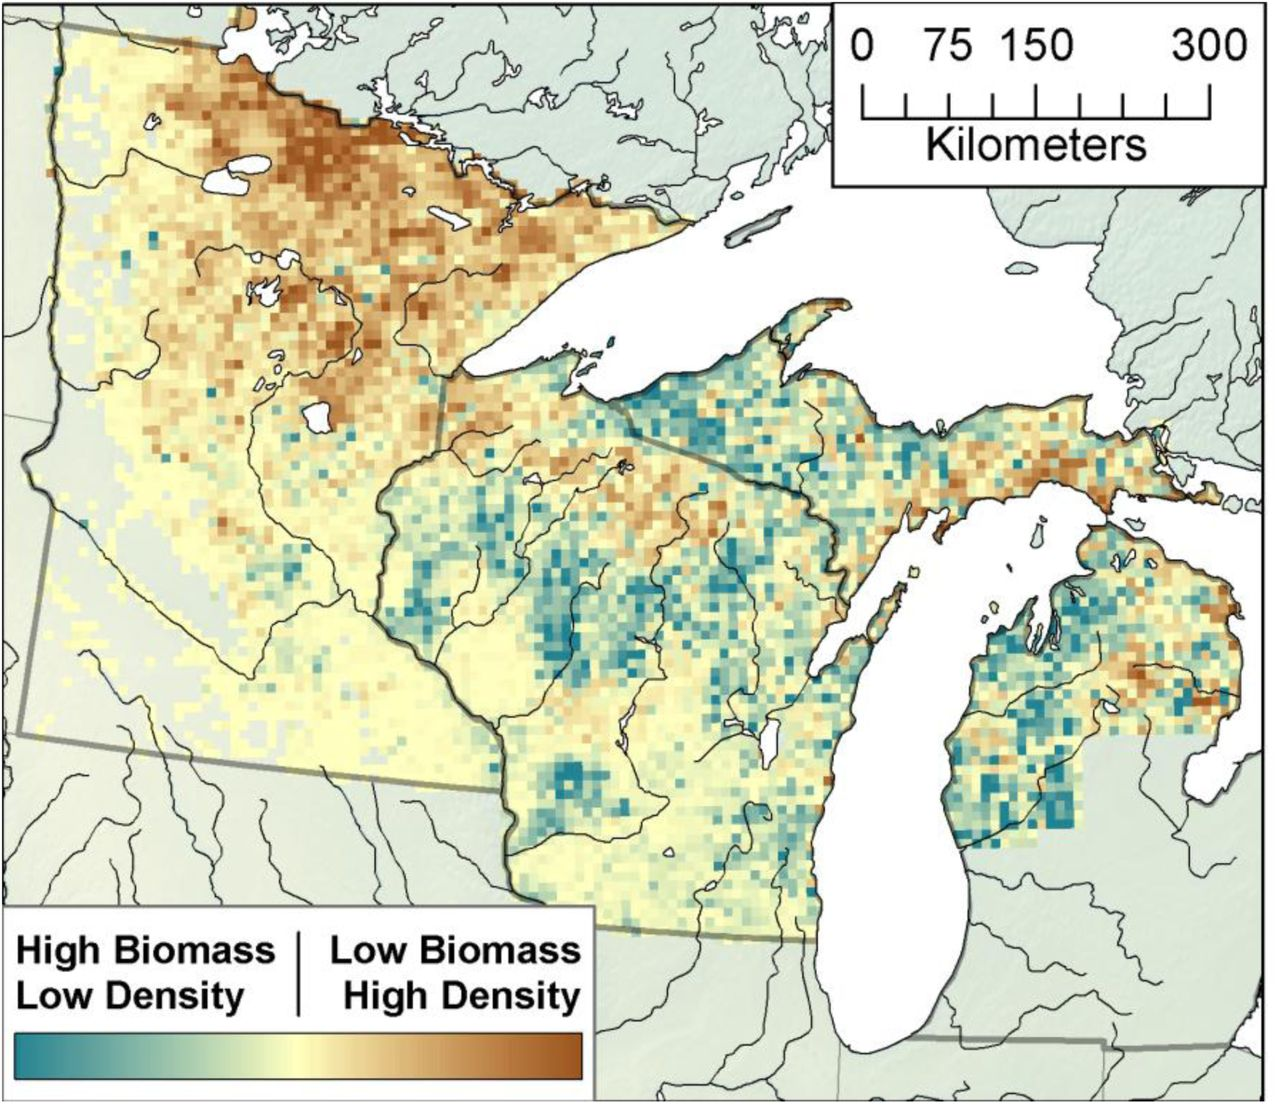 Changes in Forest Composition, Stem Density, and Biomass from the